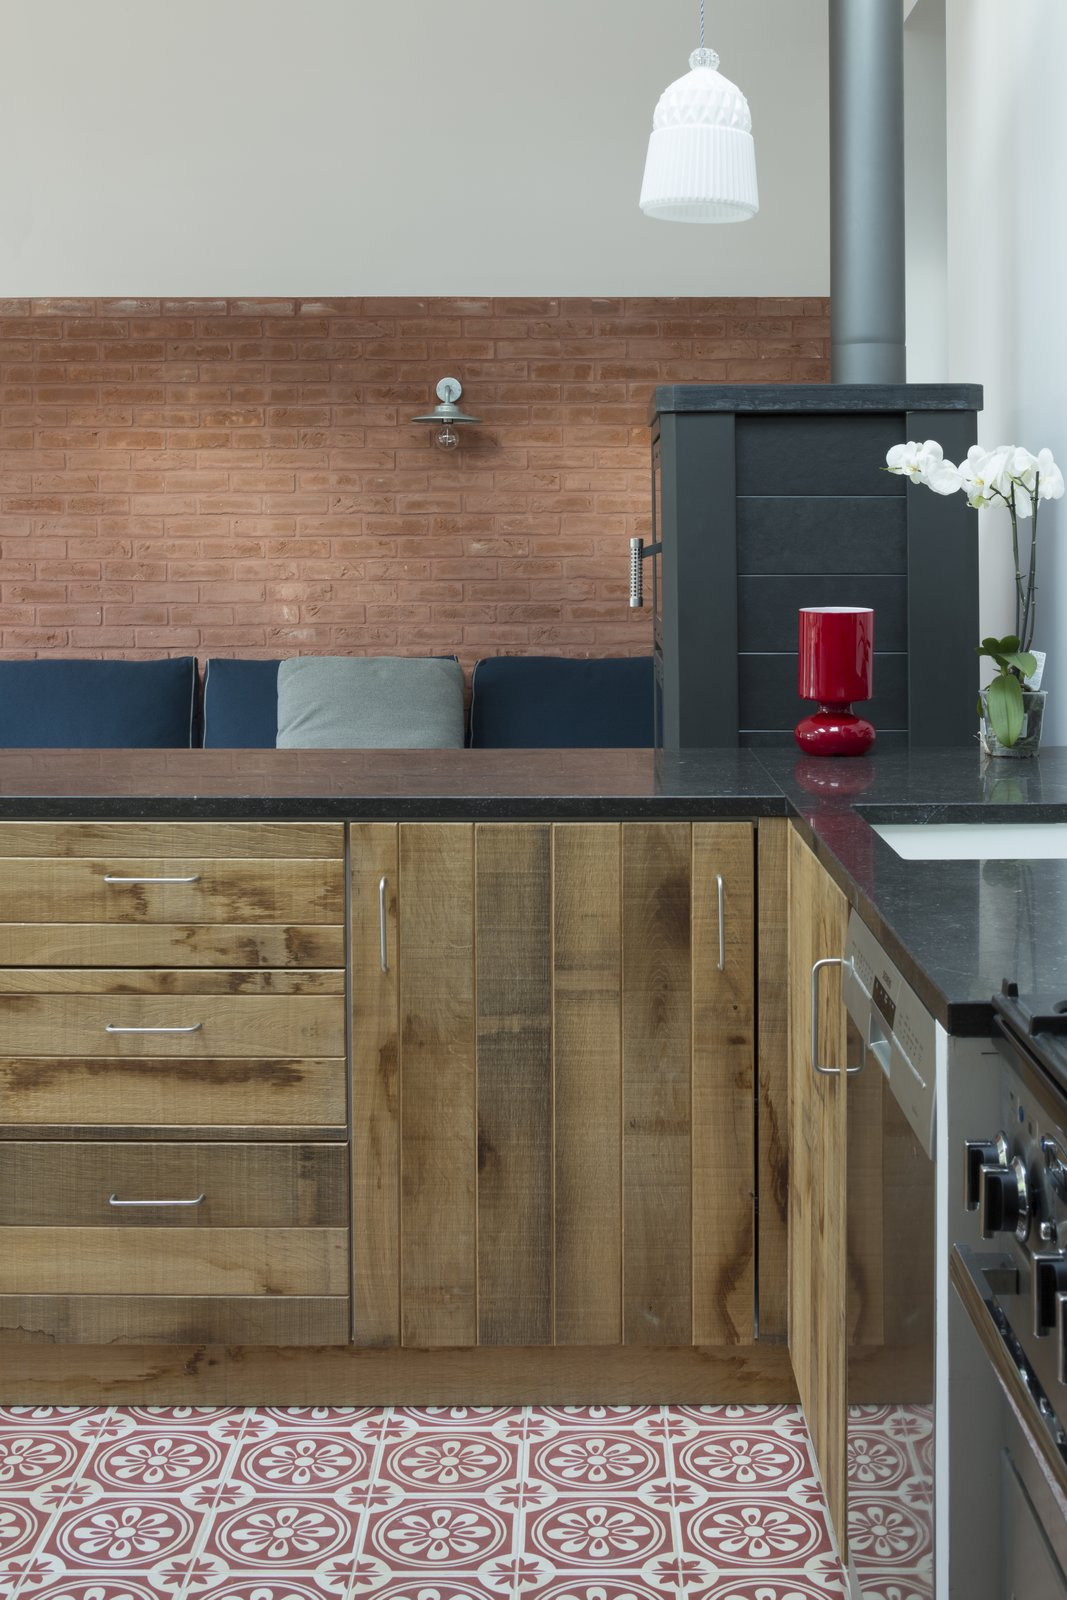 Carocim tiles and custom wood cupboards add lively details to the kitchen's contained space.  Wisteria Residence by Kelly Dawson